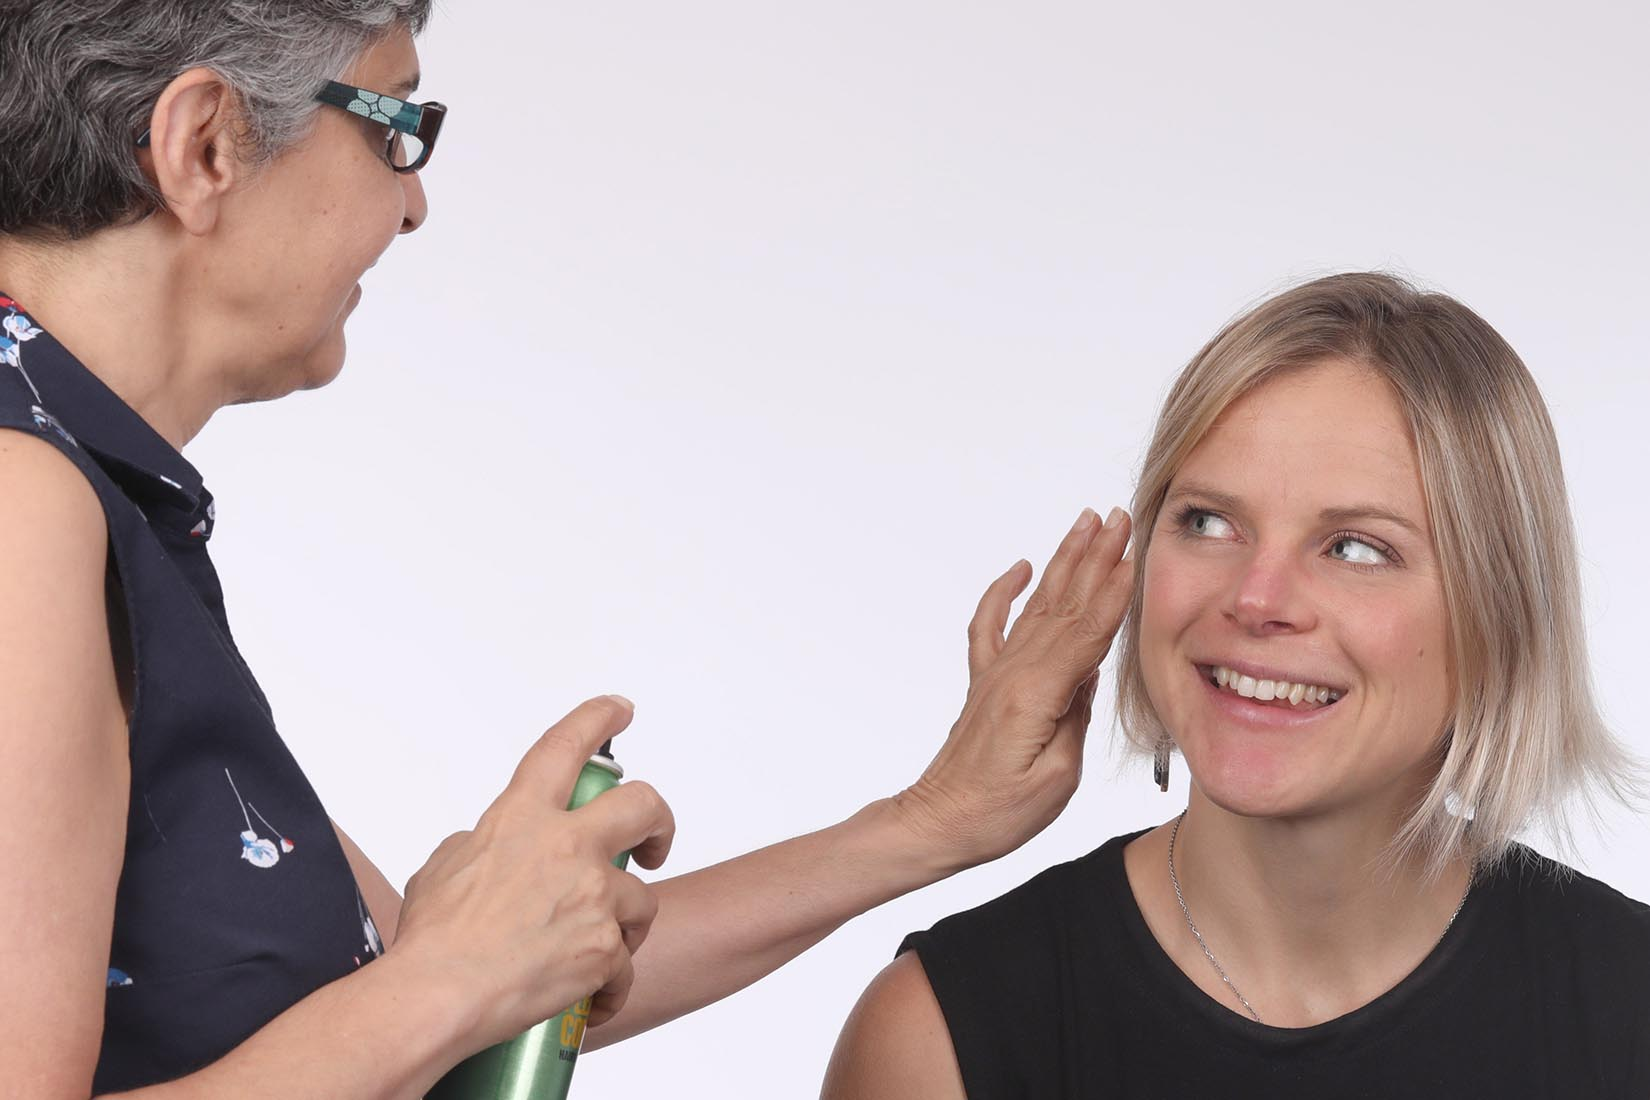 preparing a client for the photoshoot